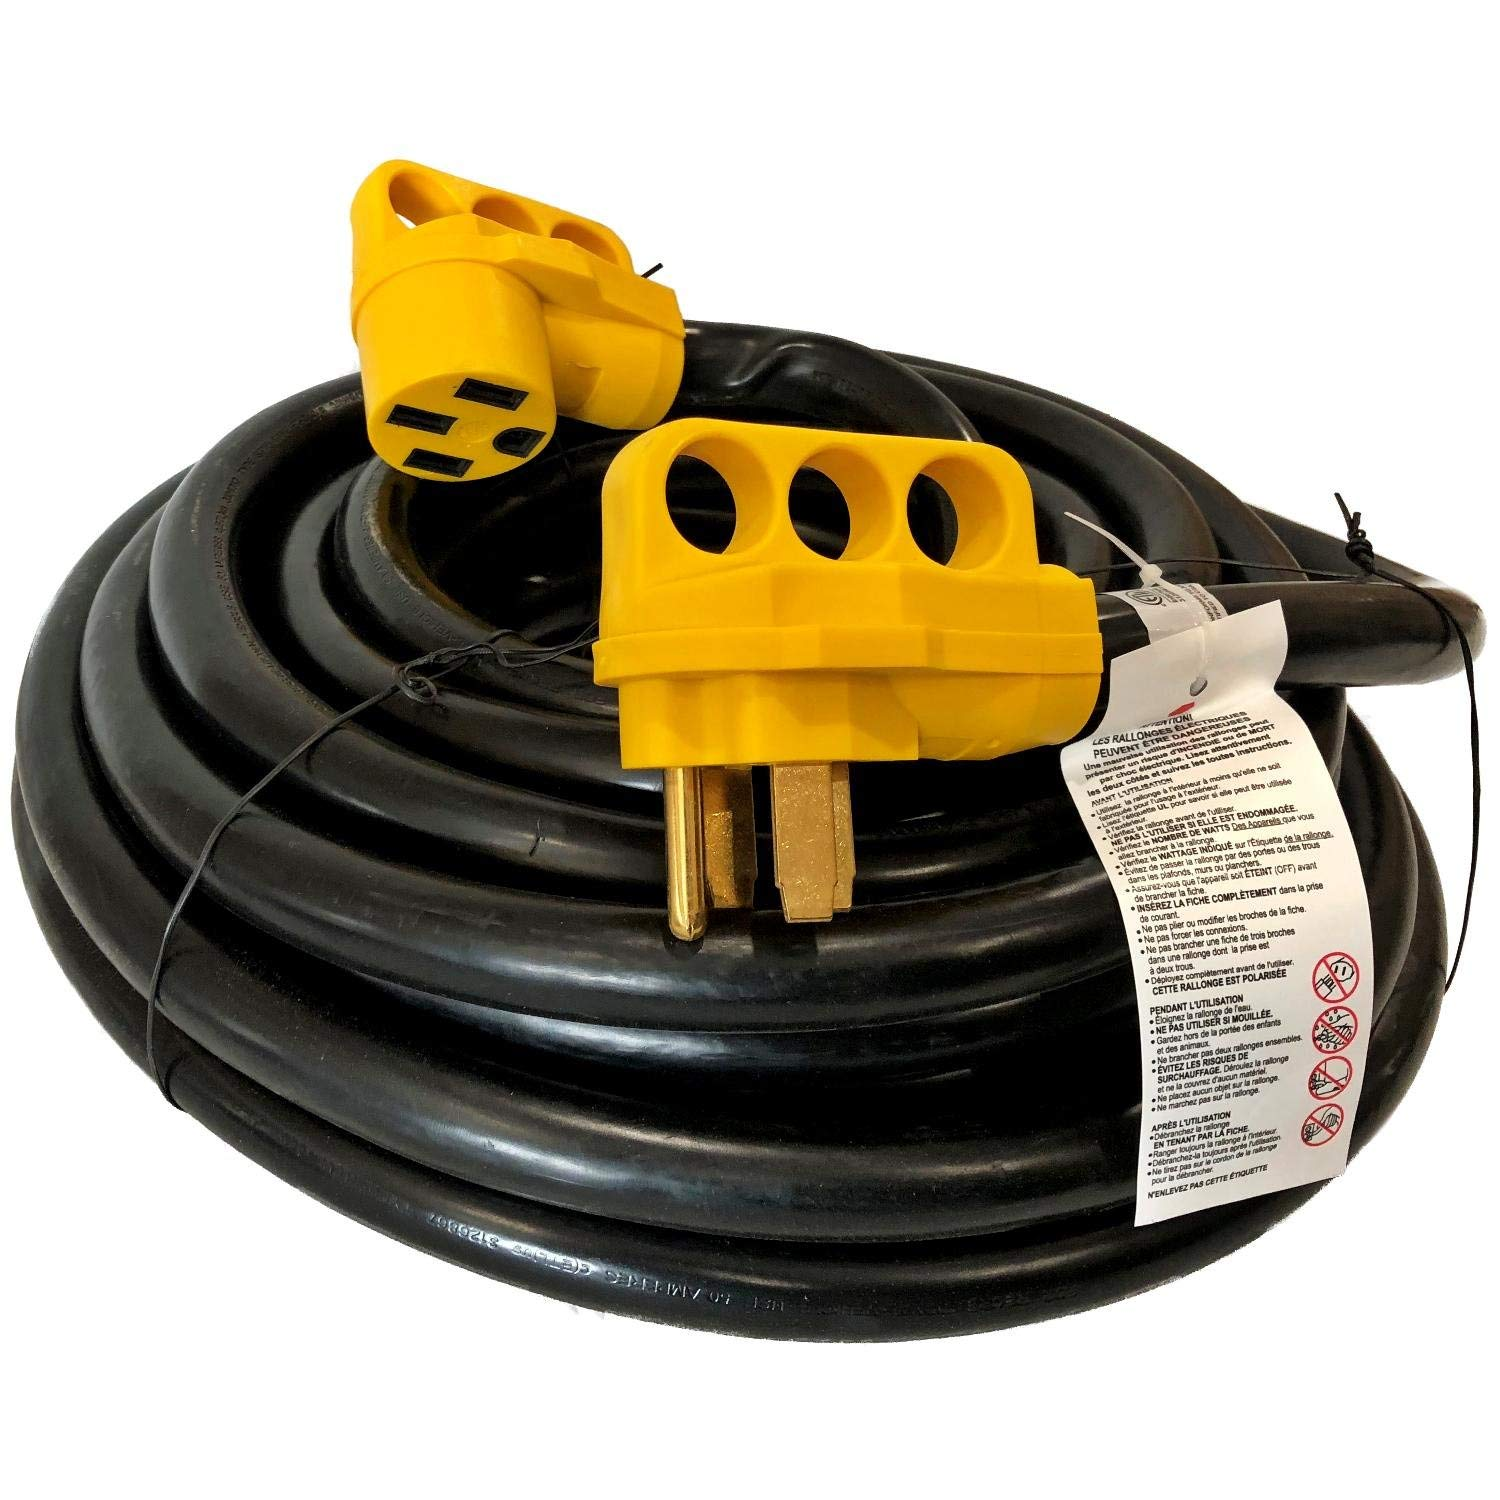 50 Ft RV Extension Cord 50 Amp Power Supply Cable W/Handles for Trailer Camper